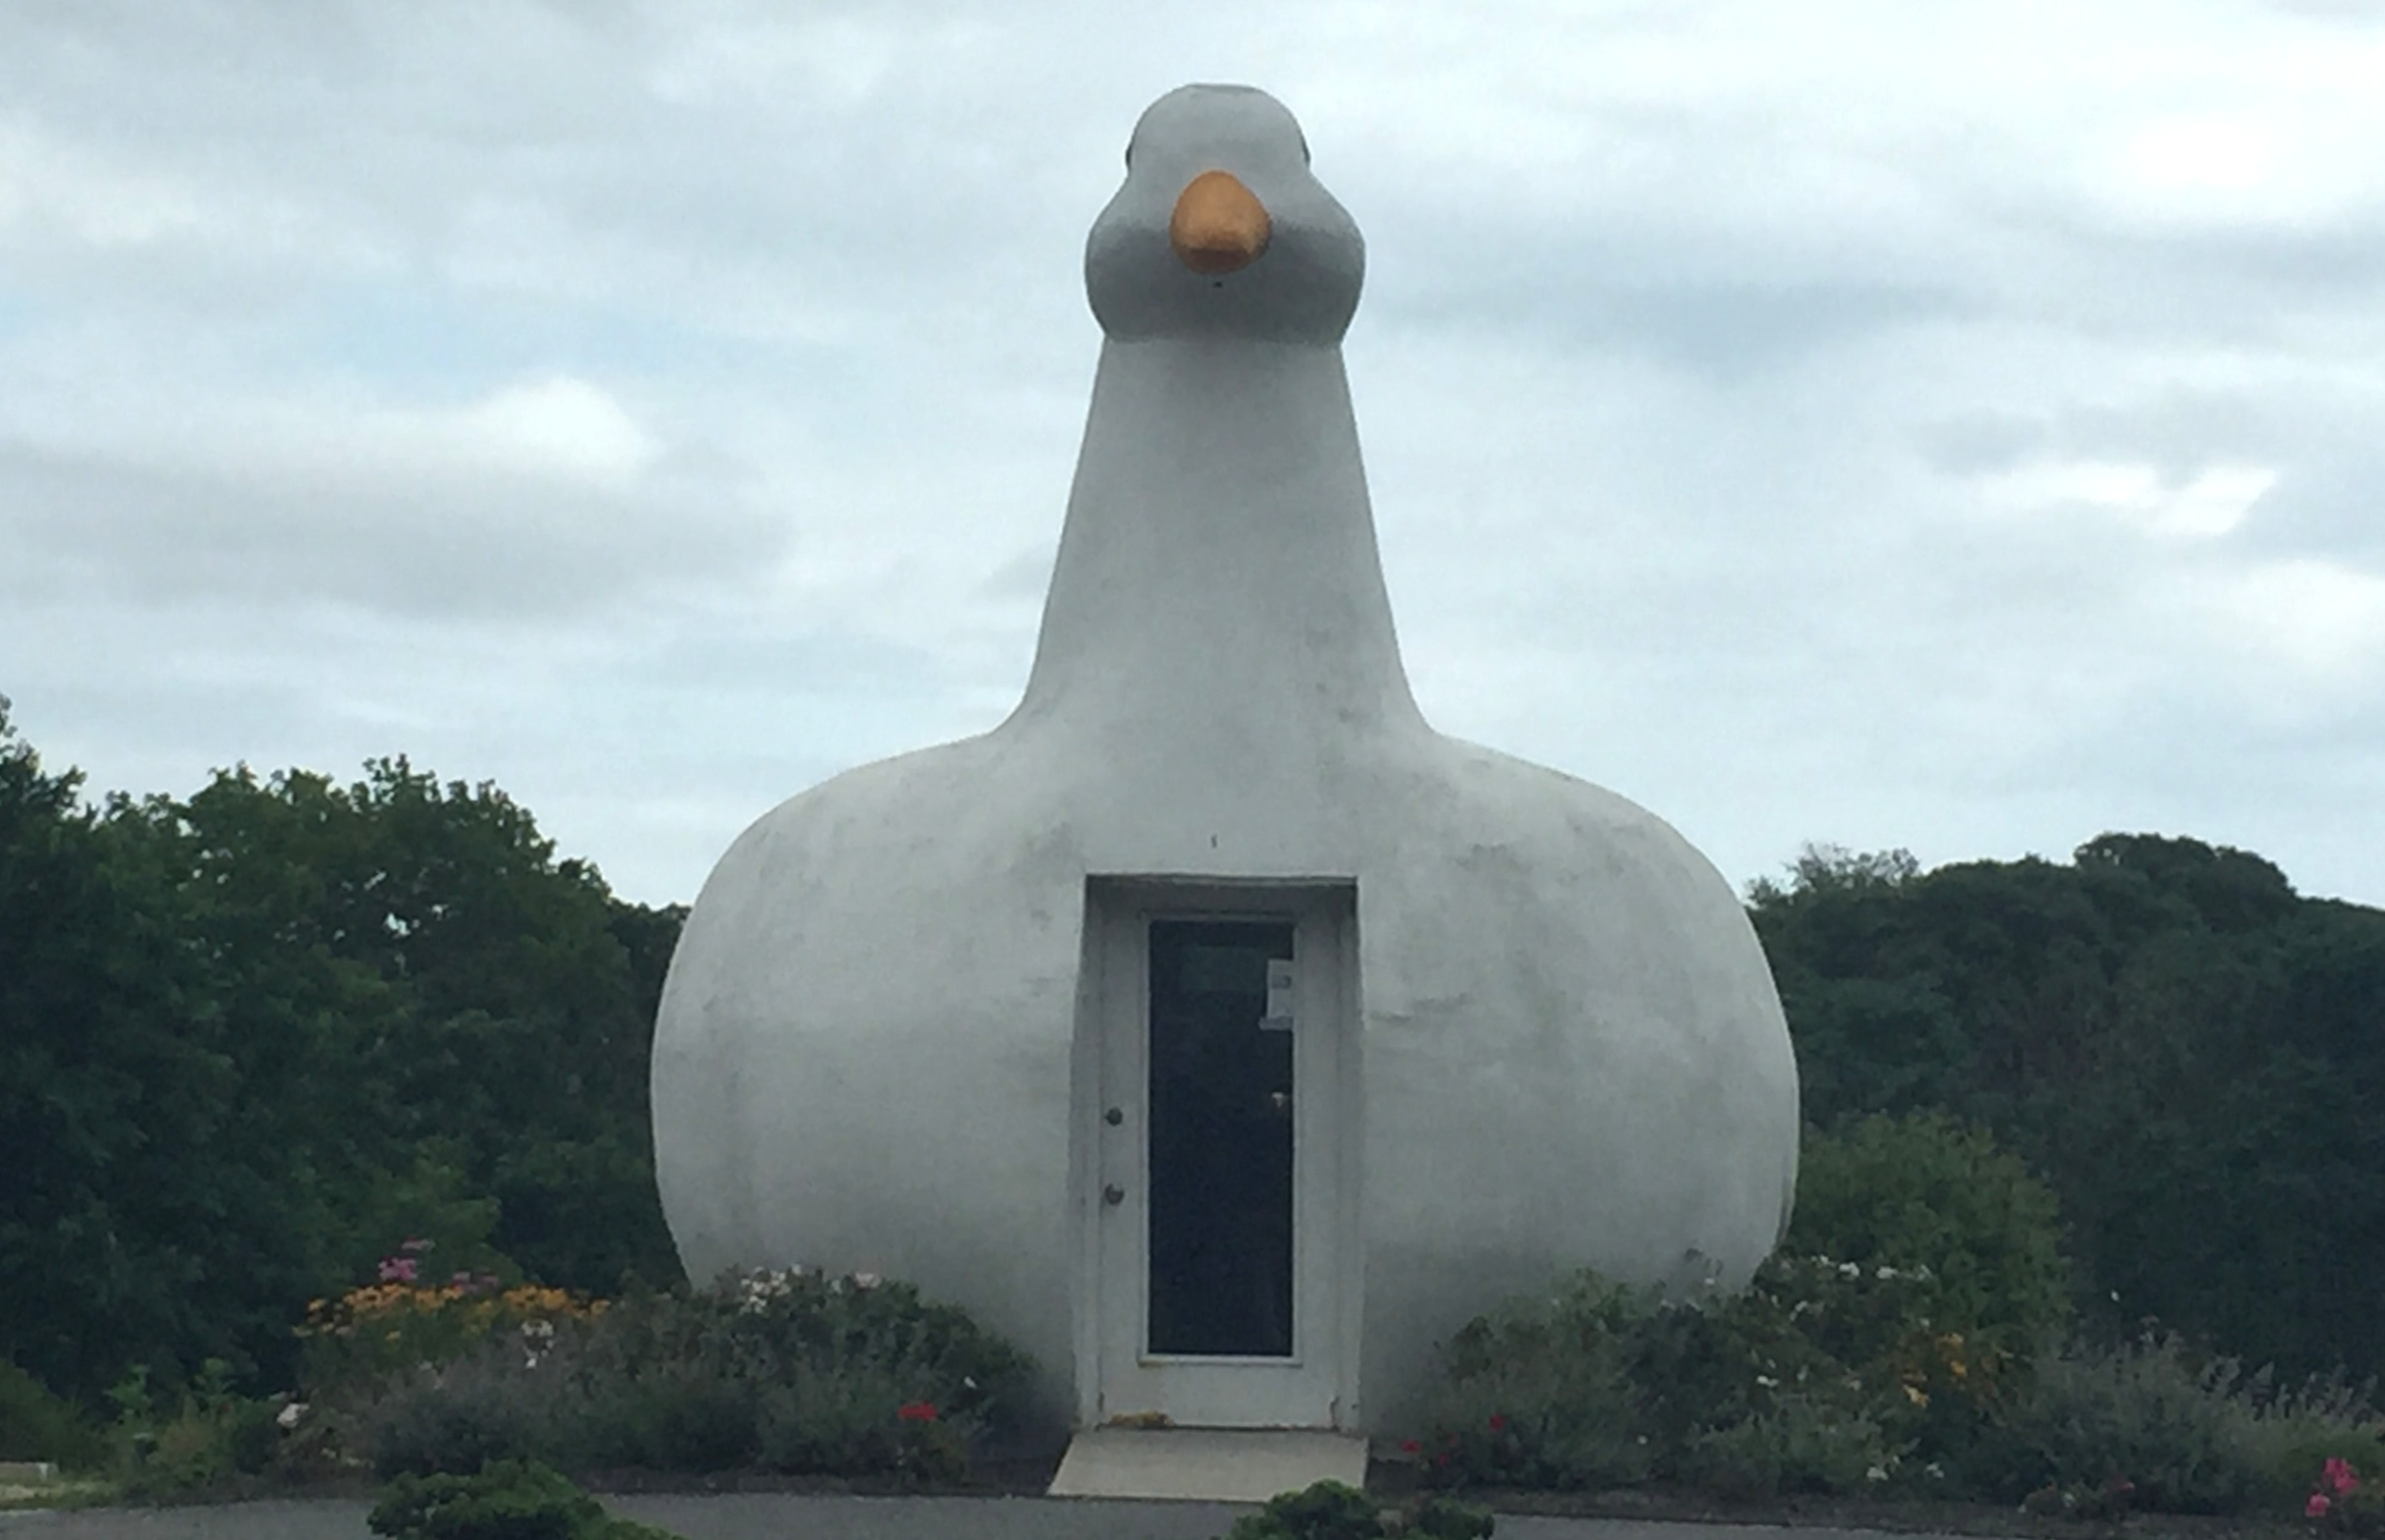 the big duck